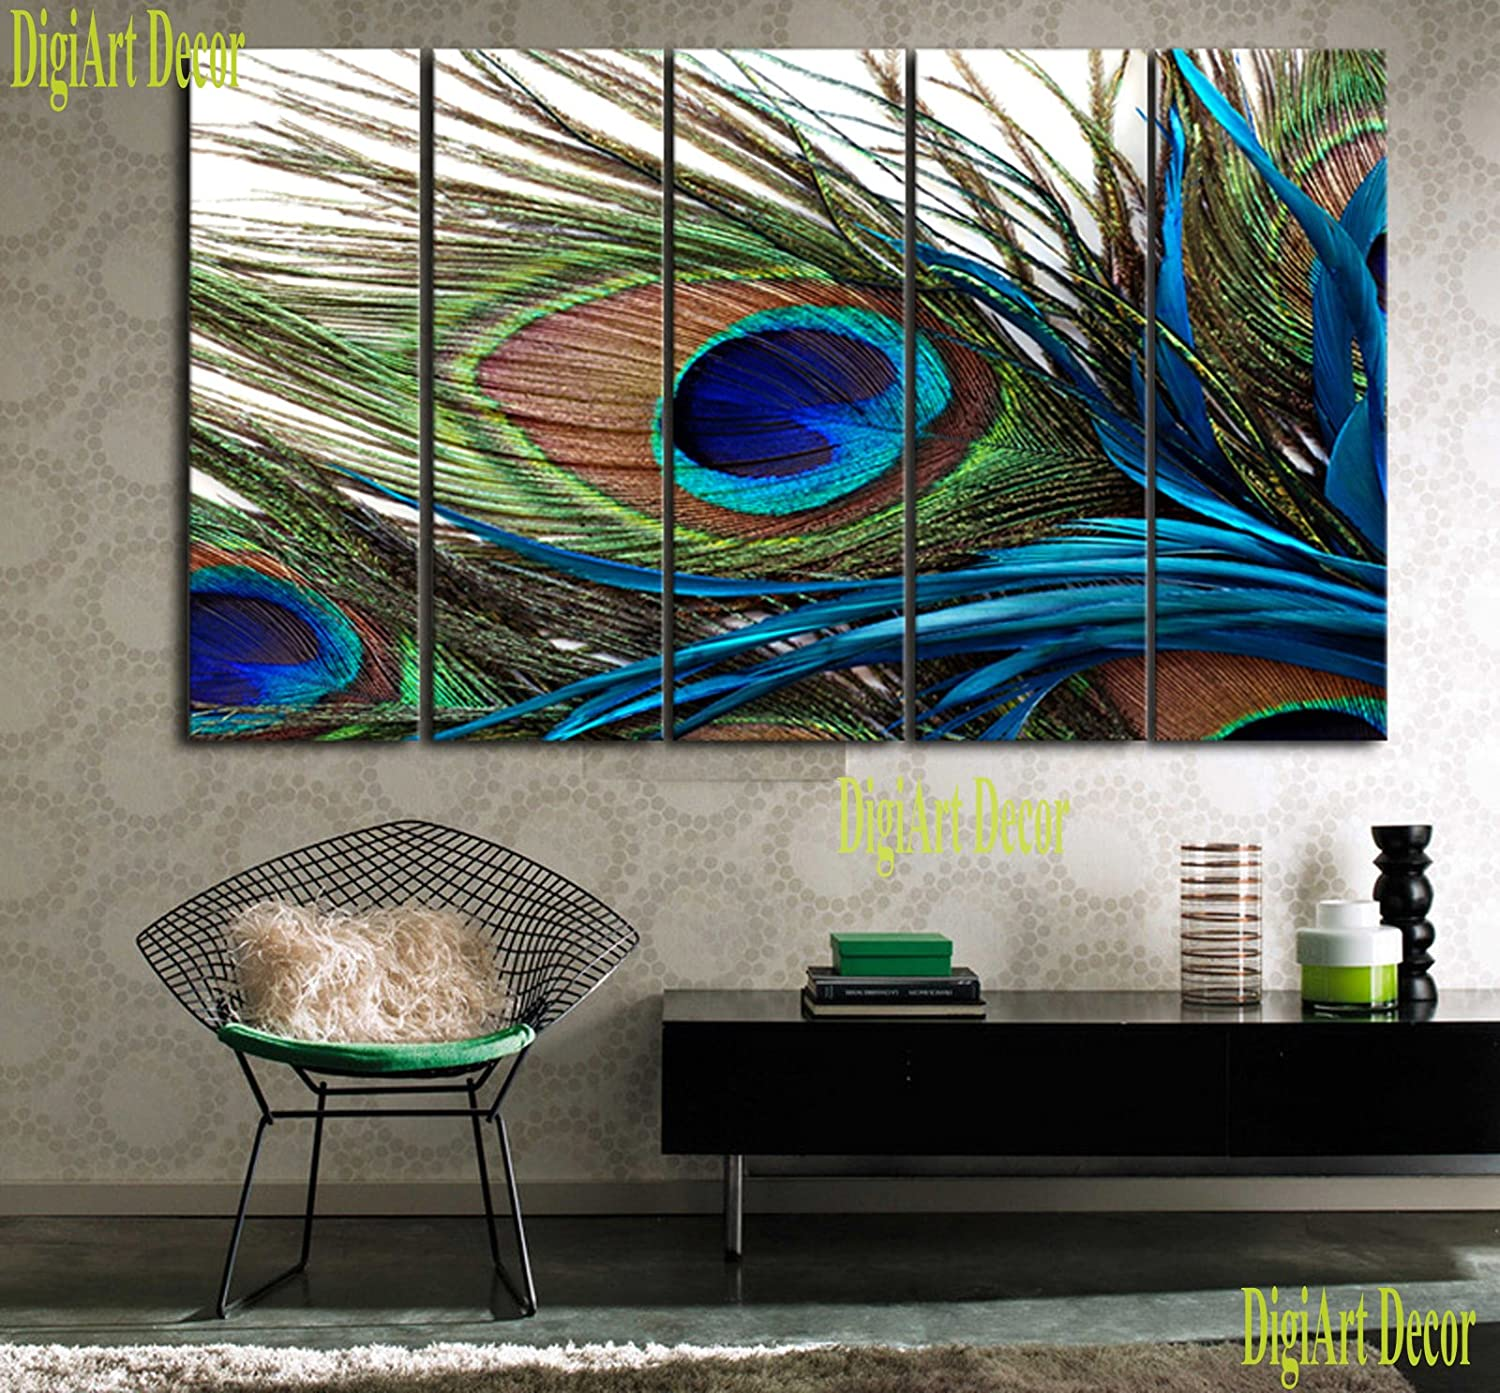 peacock inspired living room. Amazon com  PEACOCK FEATHER Ready to hang 5 piece wall art print mounted on fiberboard canvas better than stretched arts size 10x28x1 each